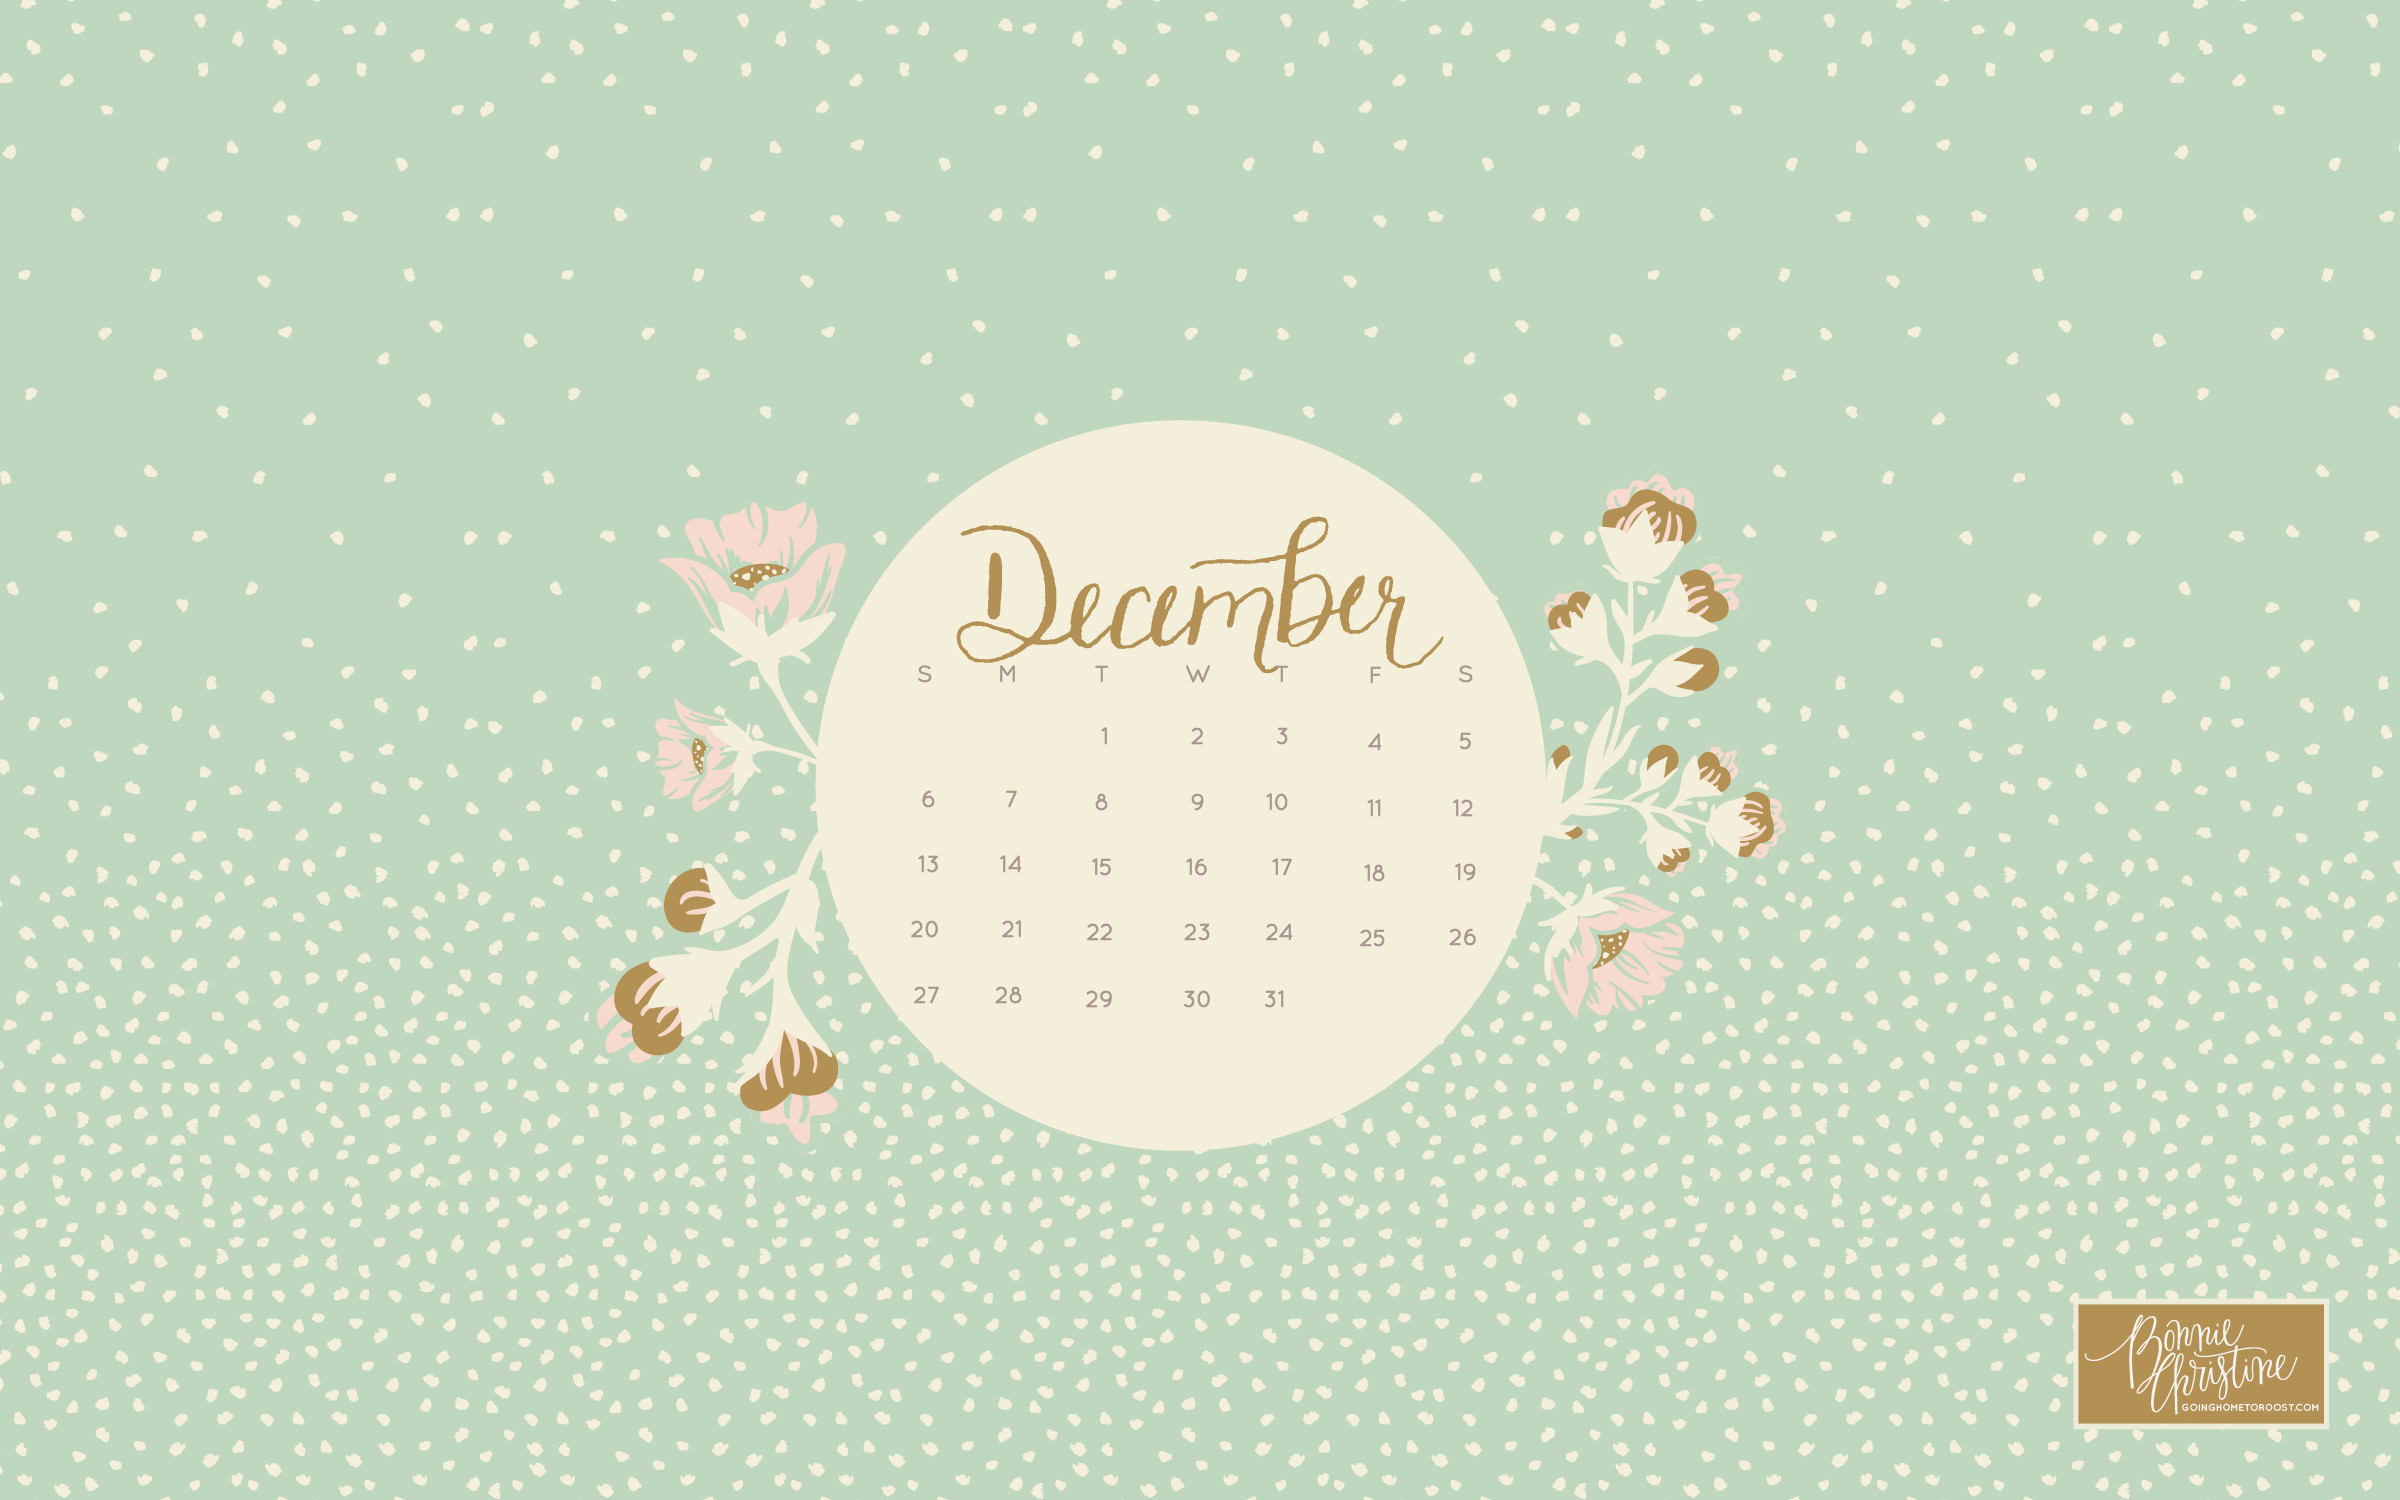 December Wallpapers 65 Background Pictures